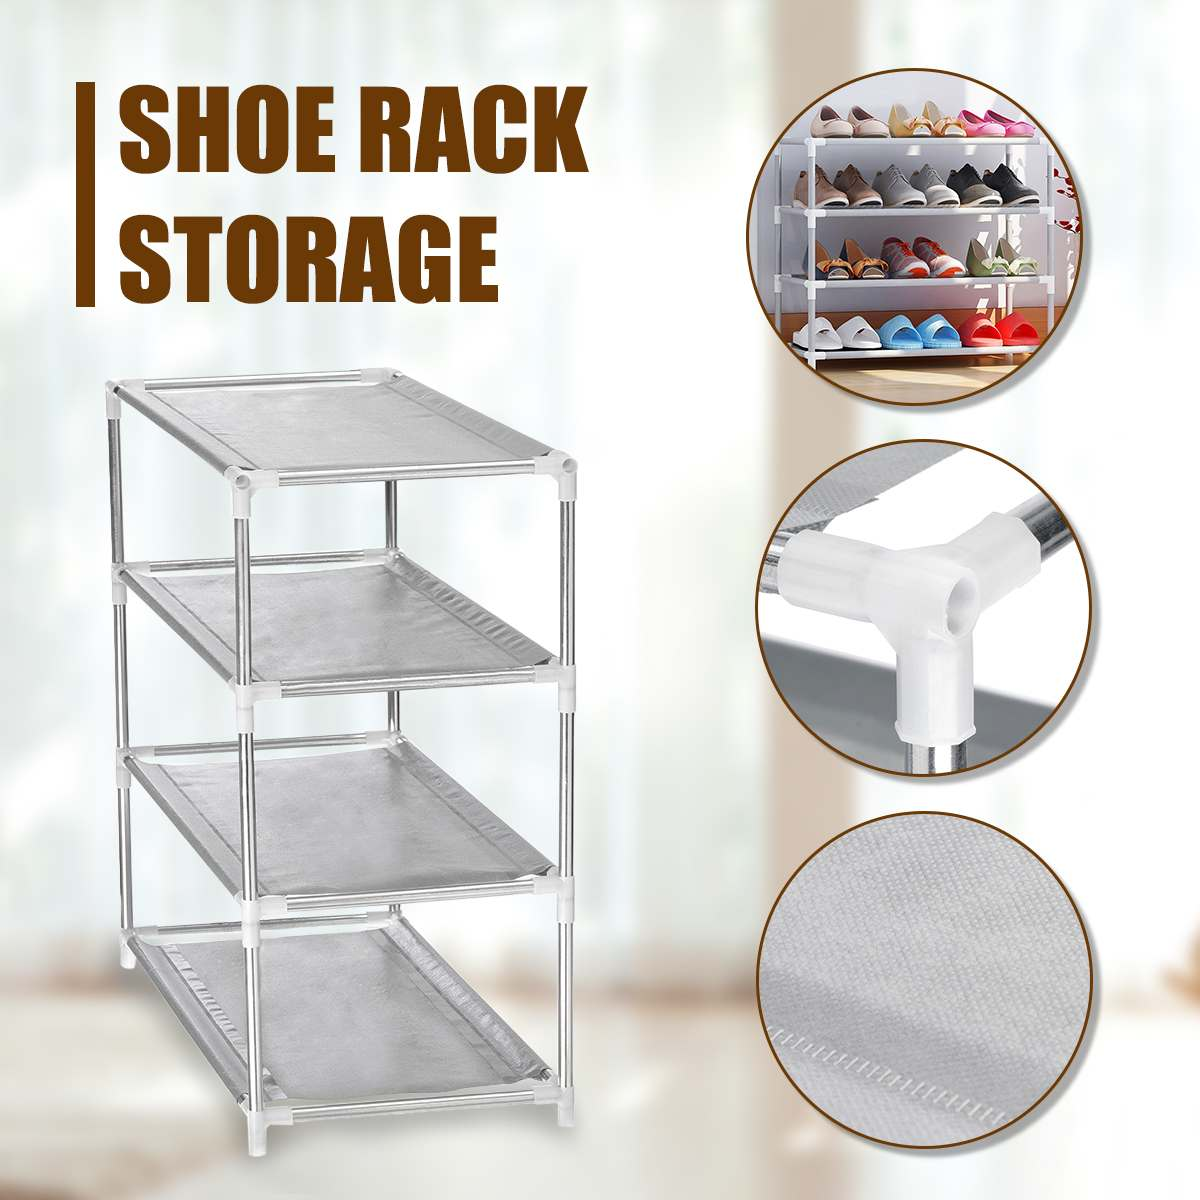 2/4/6/8/10 Tier Portable Shoes Display Storage Multi Layer Tier Optional Metal Shoe Rack Storage Organizer Stand Shelf Holder2/4/6/8/10 Tier Portable Shoes Display Storage Multi Layer Tier Optional Metal Shoe Rack Storage Organizer Stand Shelf Holder